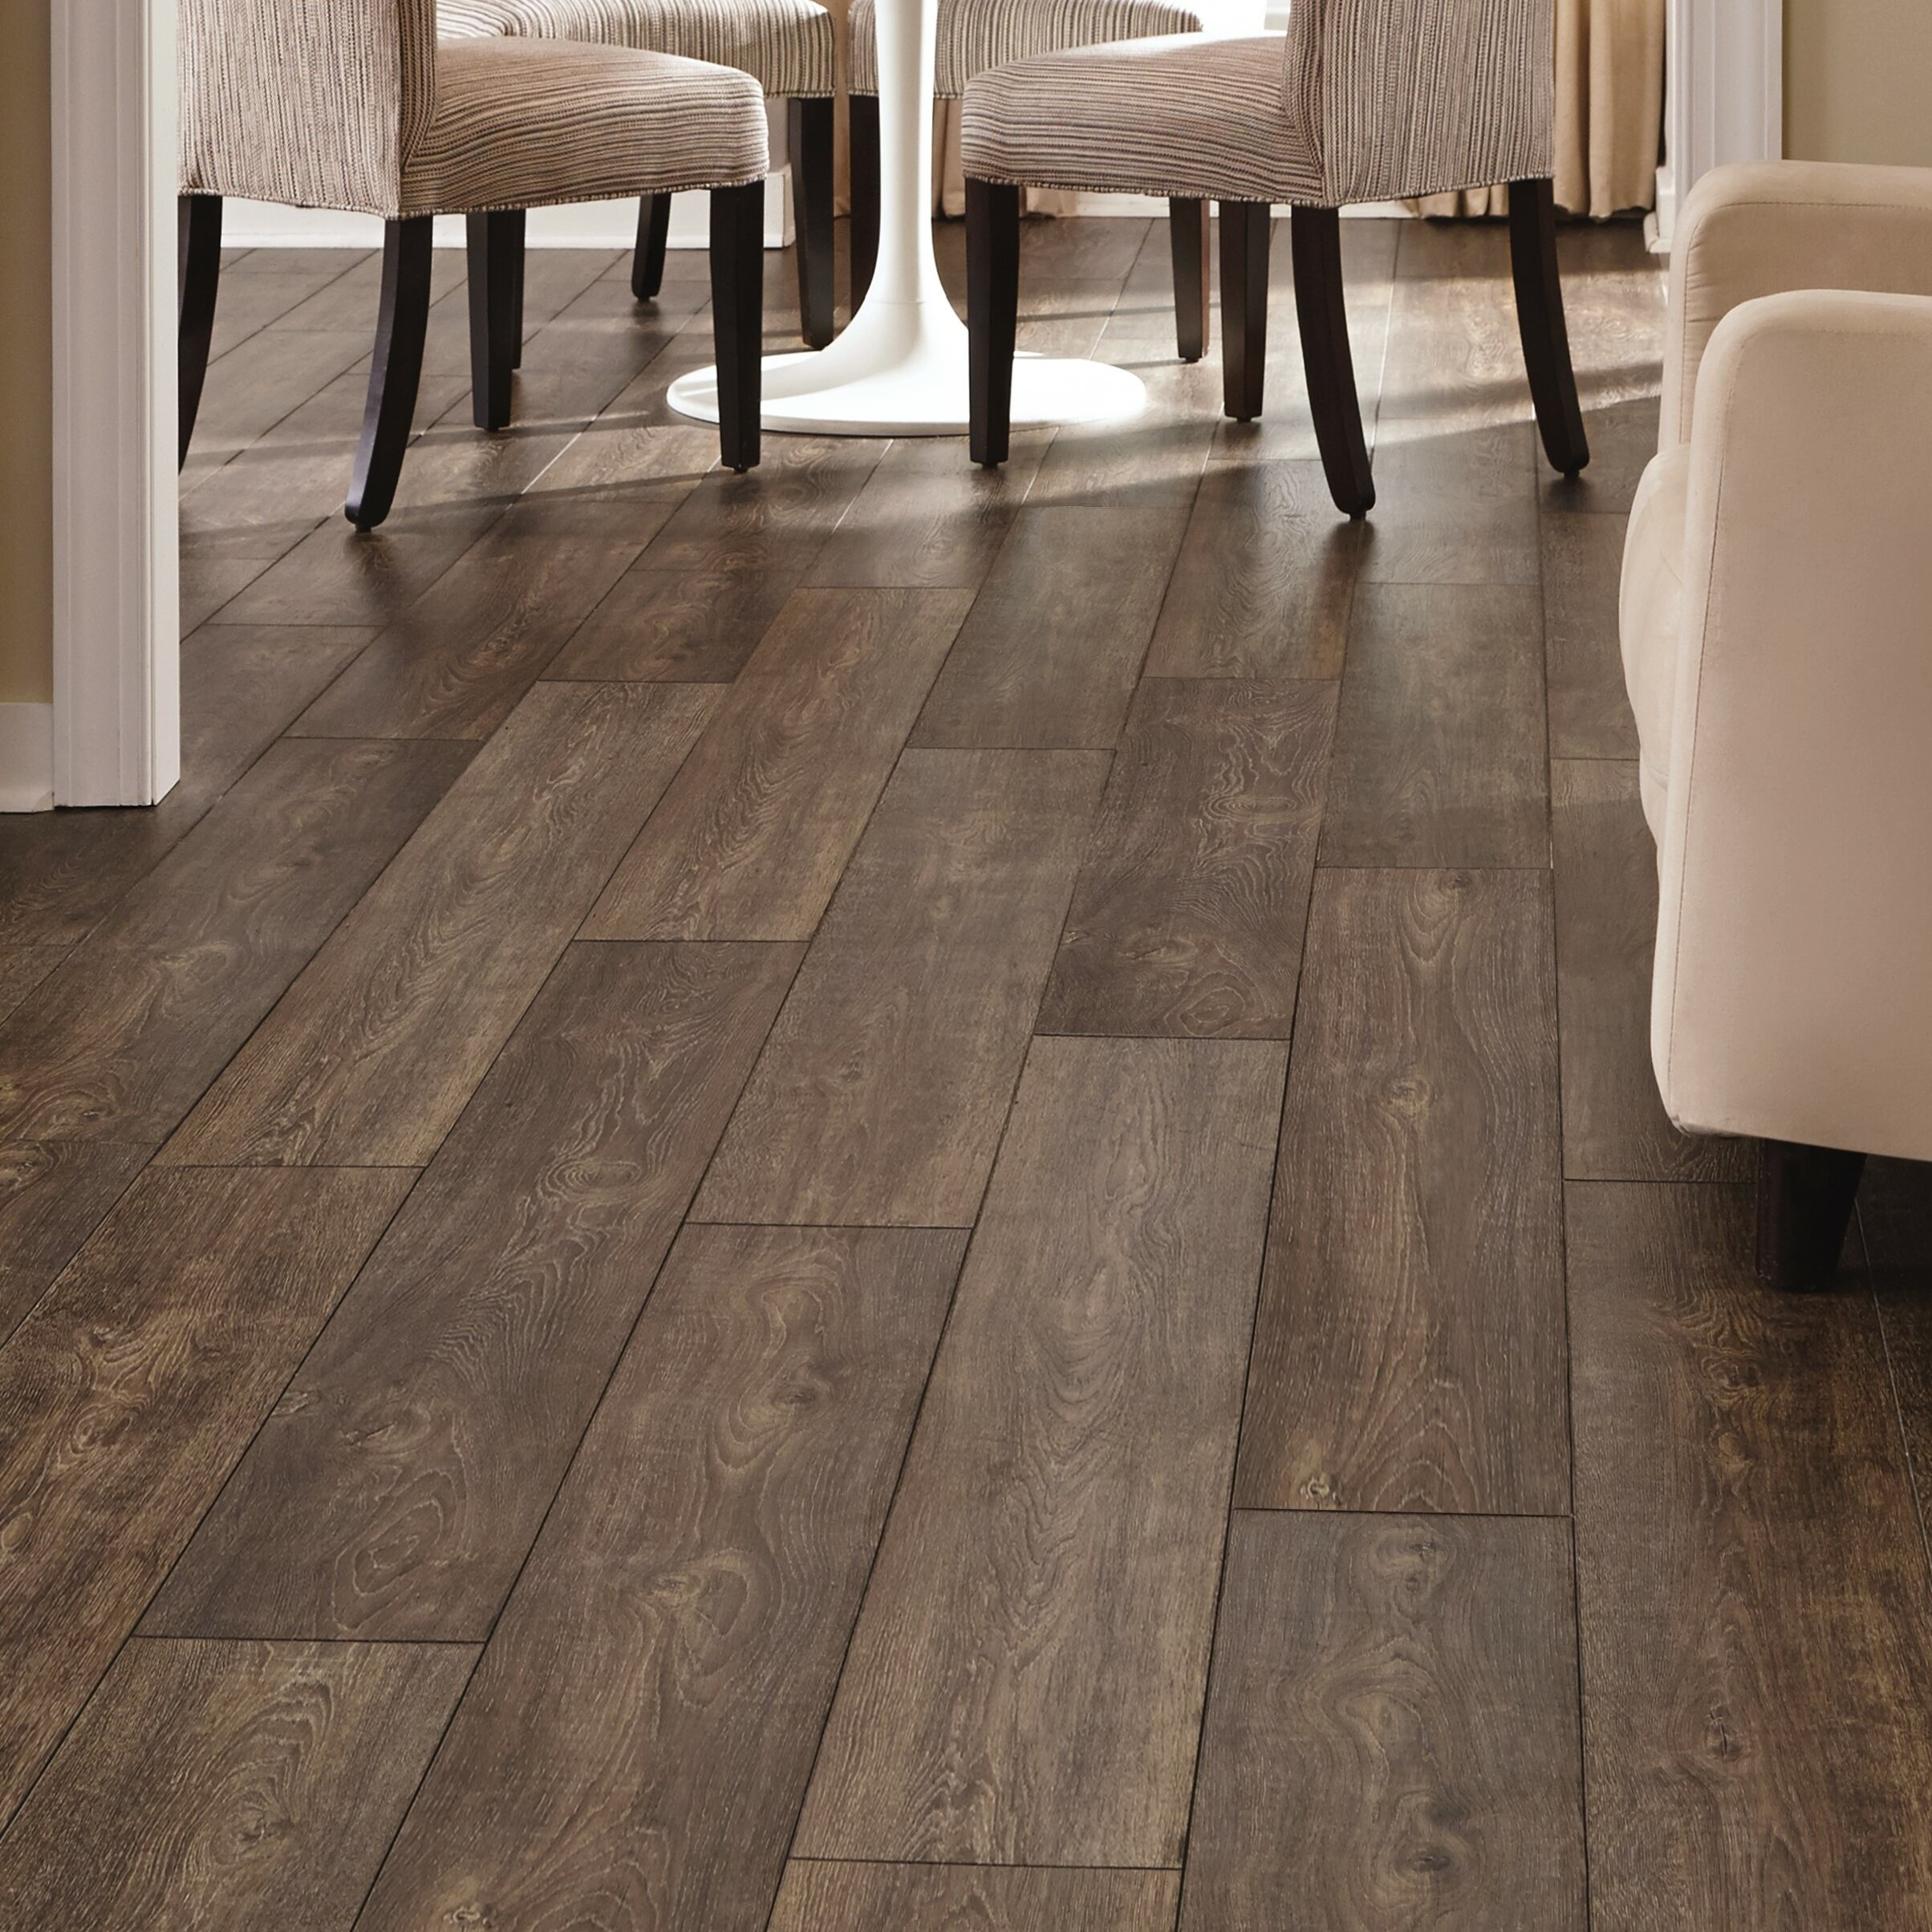 Mannington Restoration Wide Plank 8'' x 51'' x 12mm Oak Laminate Flooring in Caraway | Wayfair